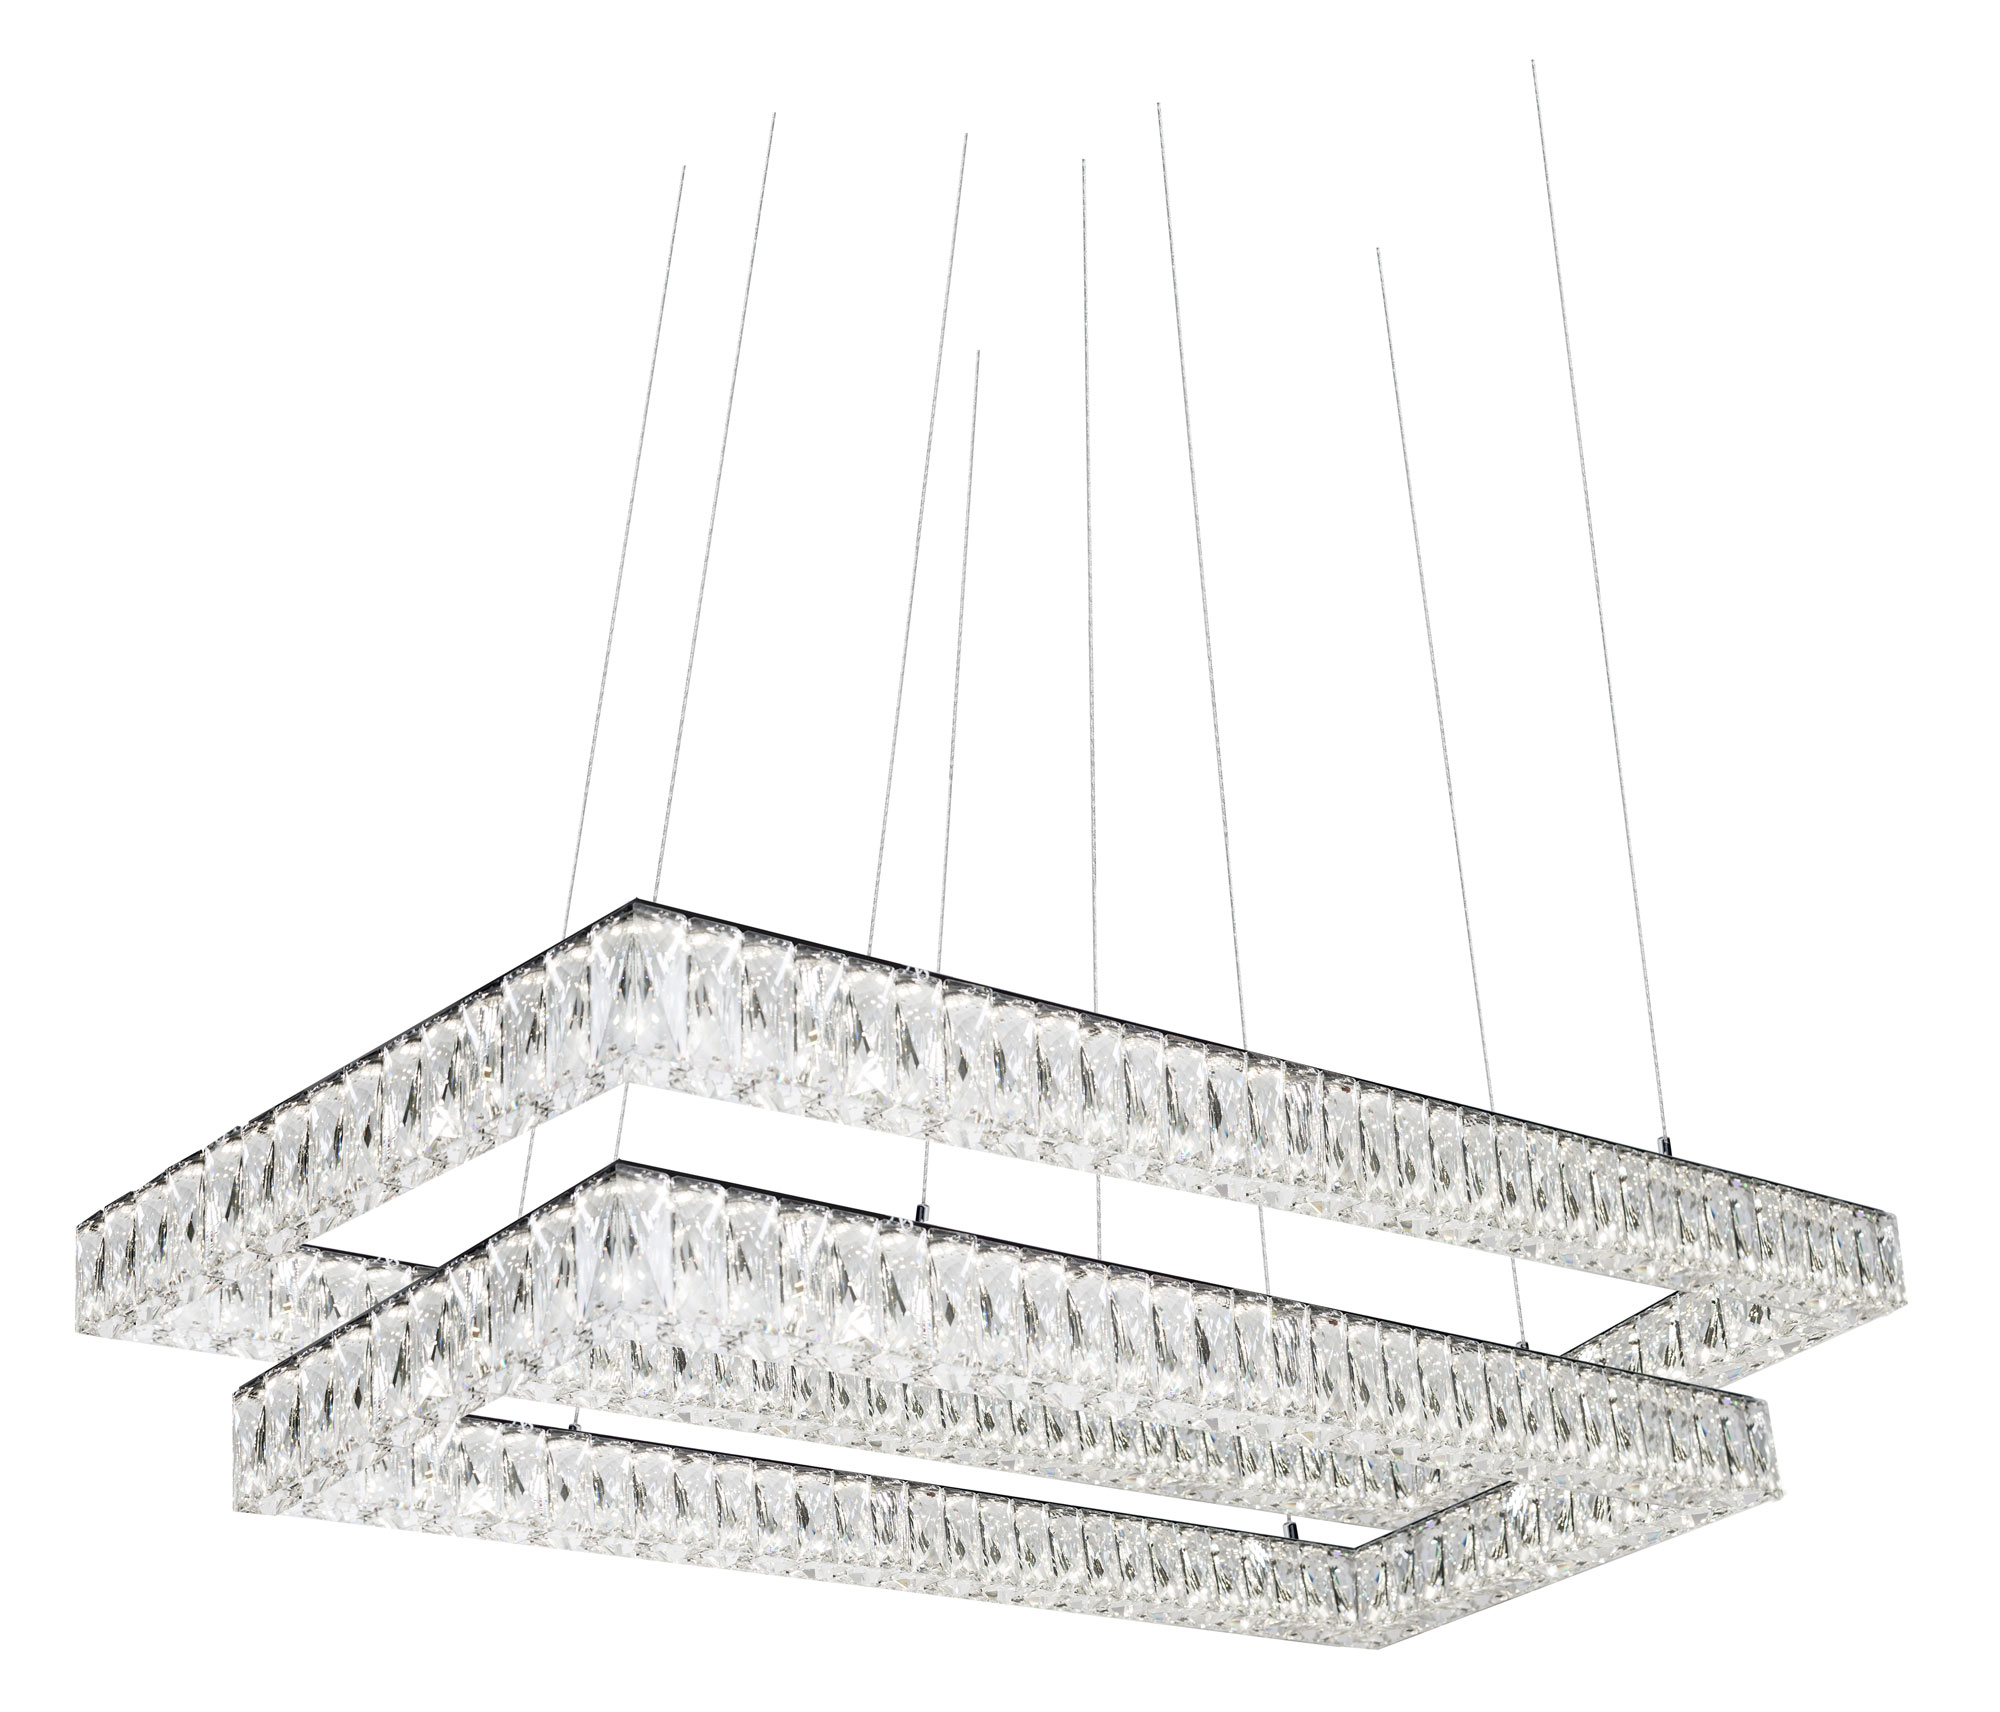 Solaris Double Tier Rectangular Chandelier By Kuzco Lighting Ch7898 4000k